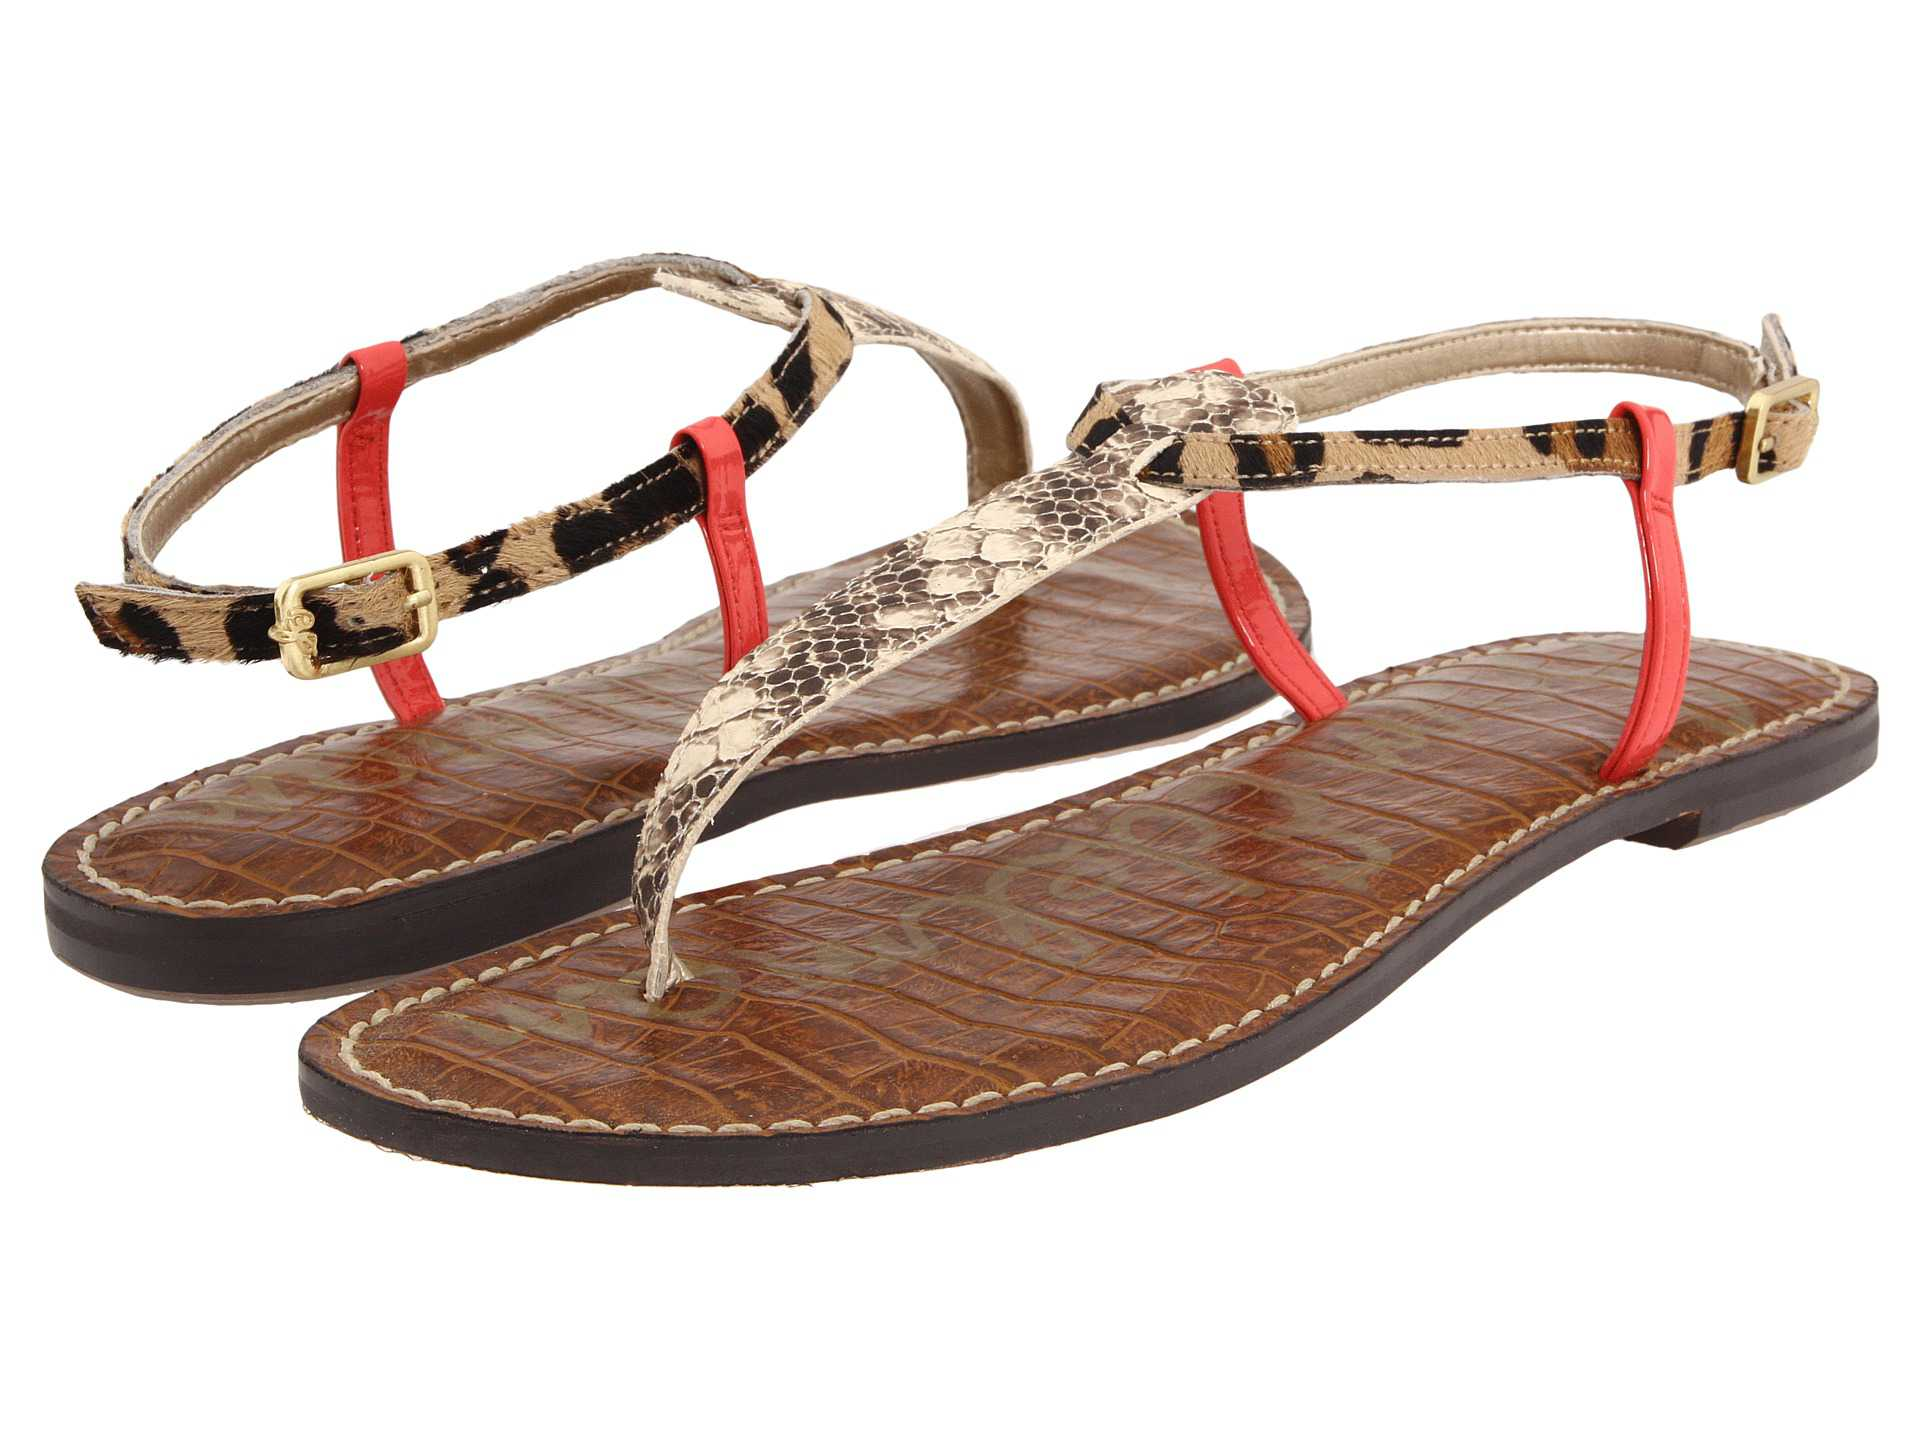 2f7785f963d314 5 Sandals to Wear With Women s Jeans